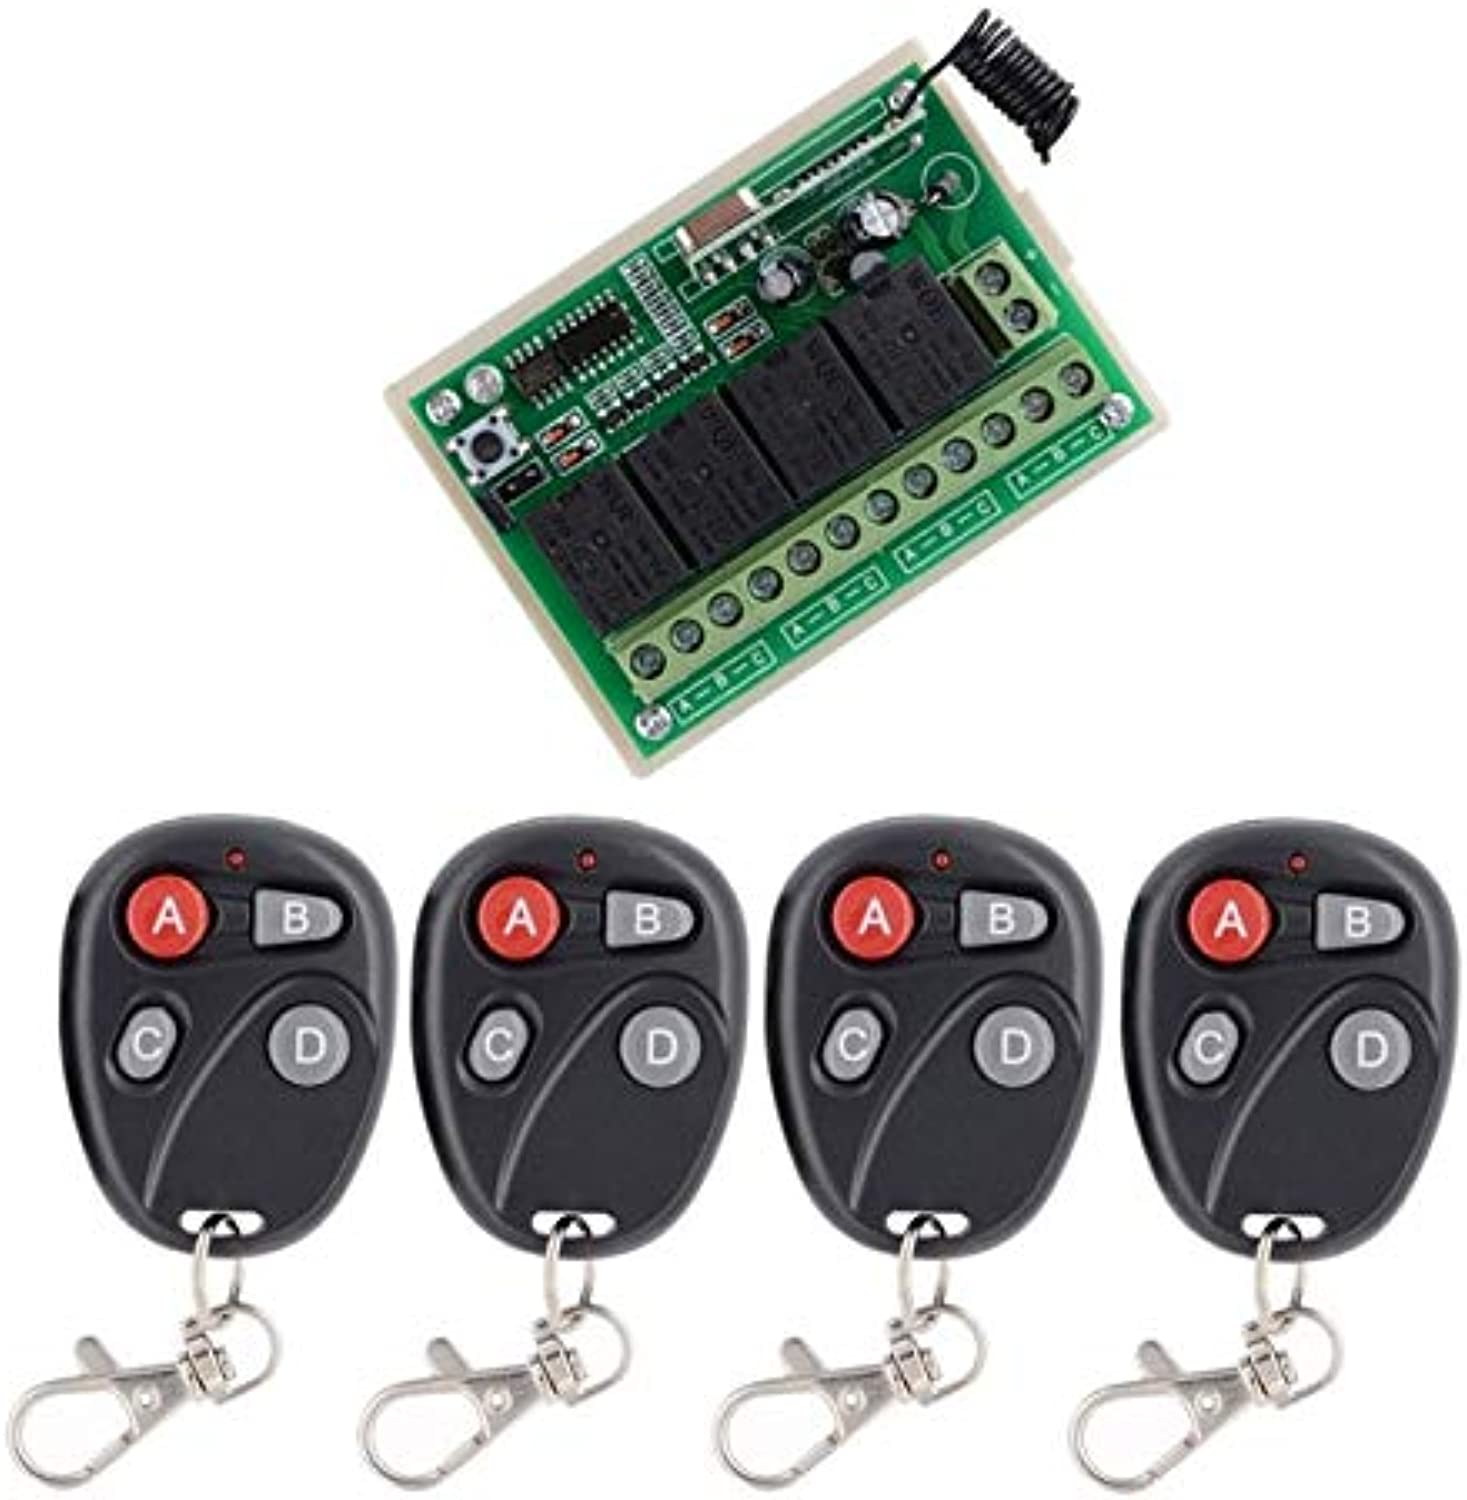 Universal Wireless Remote Control 12V 4CH Channel 433Mhz Switch Integrated Circuit Black Transmitter DIY Replace Part Tool(color  4)